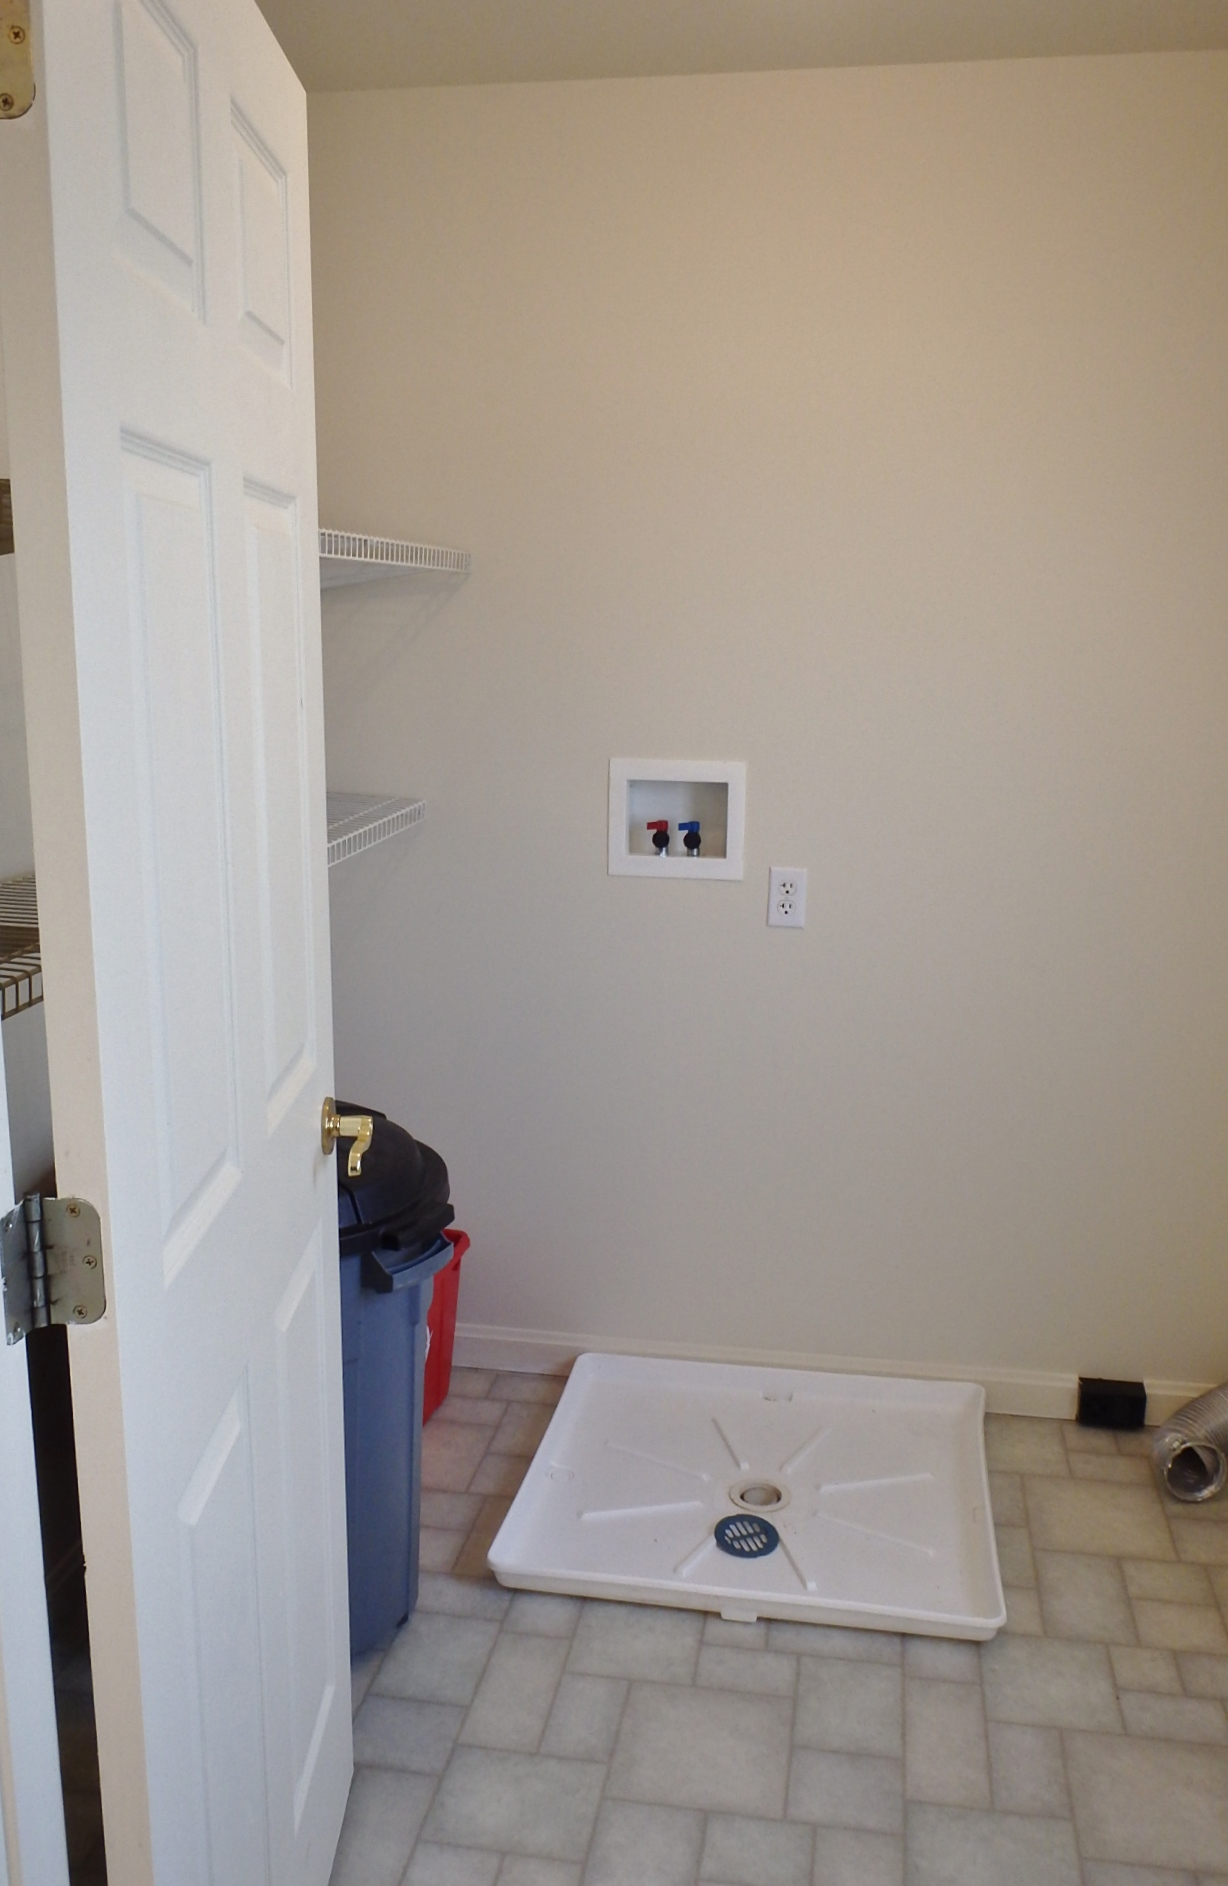 Combined laundry and pantry photo at 261 Ghaner Drive.